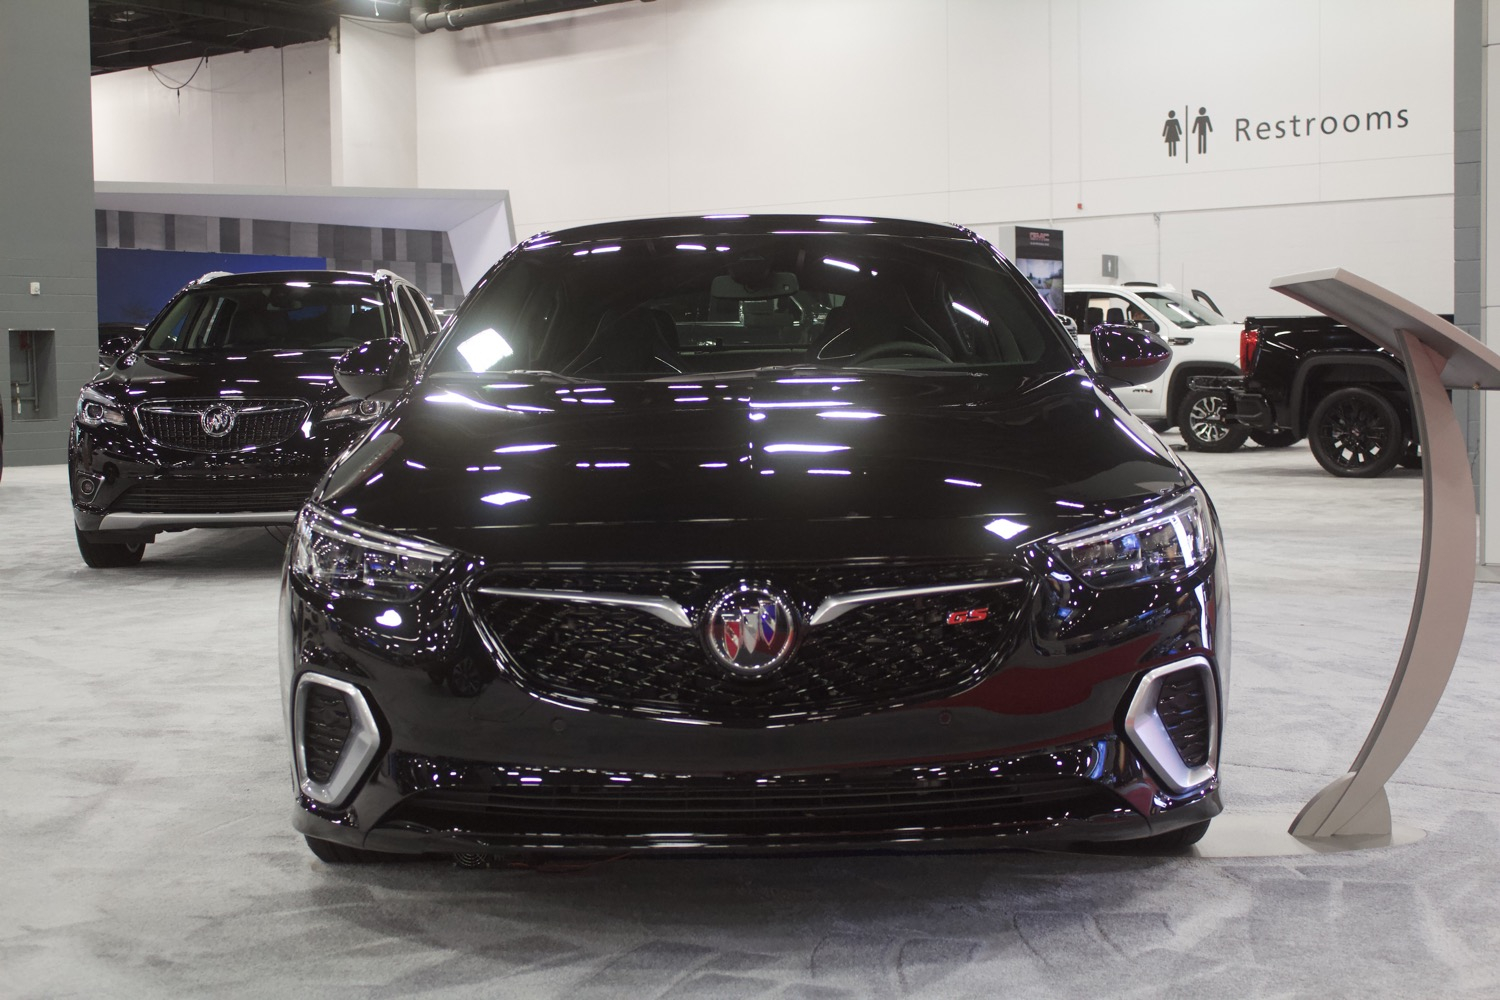 2021 Buick Regal Info, Specs, Wiki | Gm Authority New 2021 Buick Regal Discontinued, Release Date, Engine